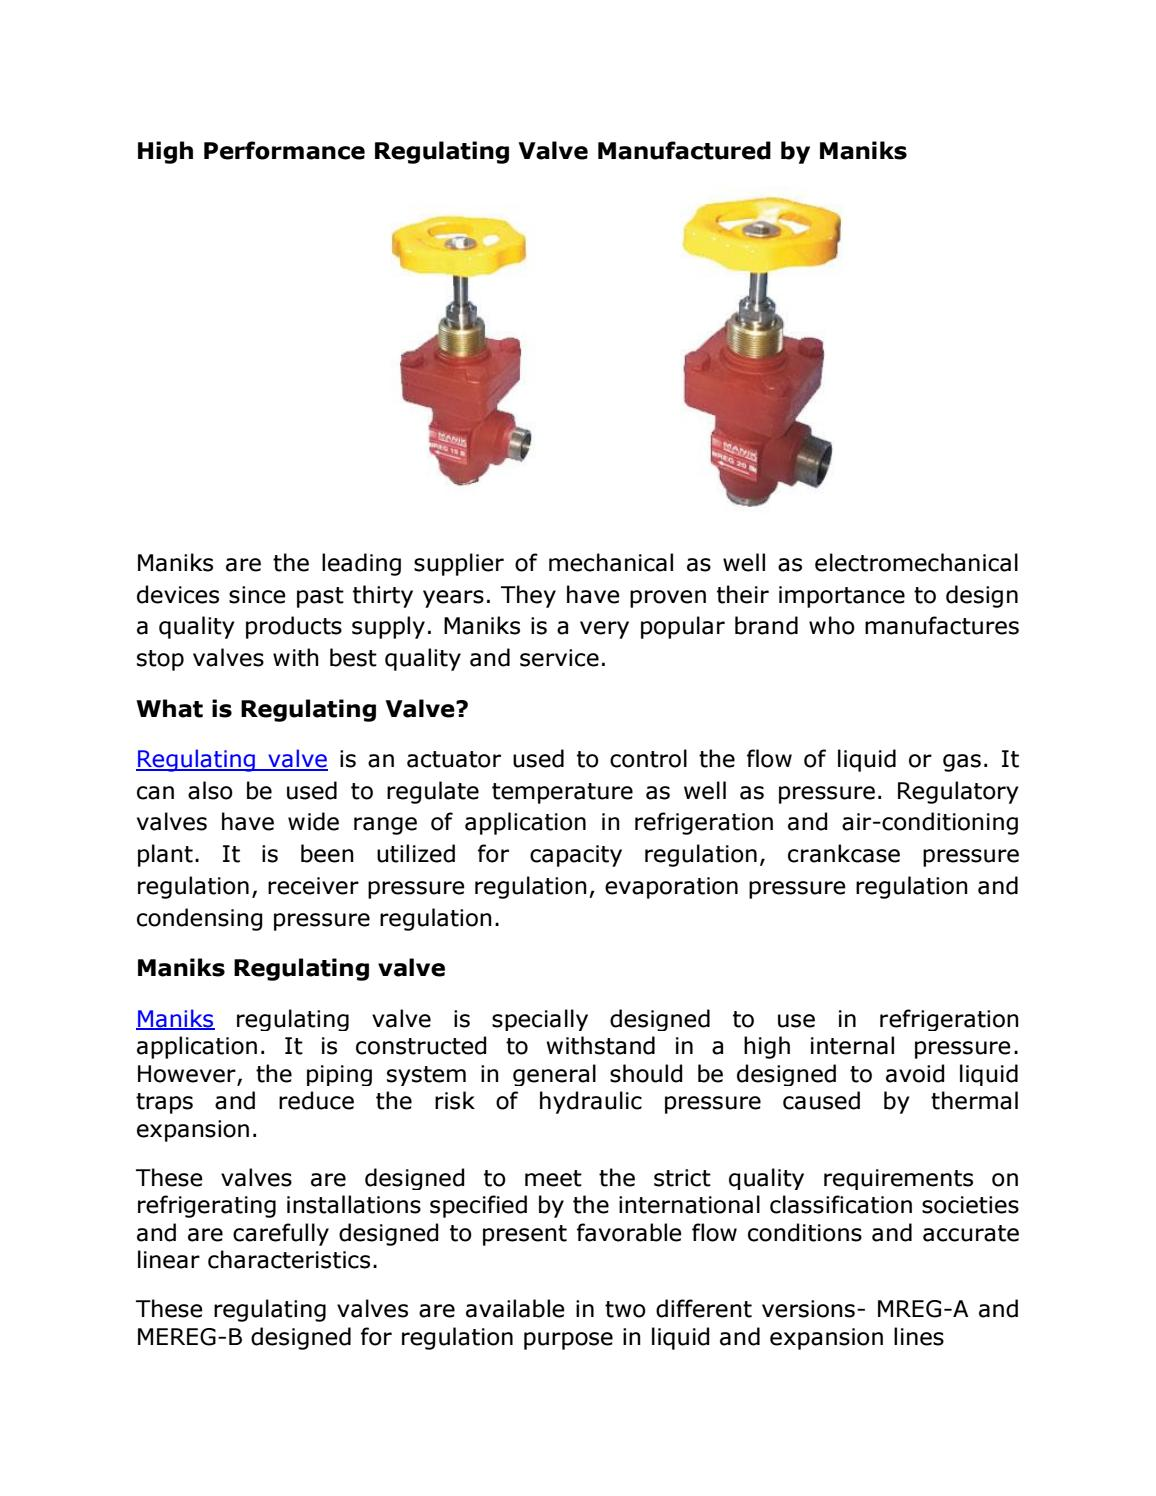 High performance regulating valve manufactured by mankis by Maniks